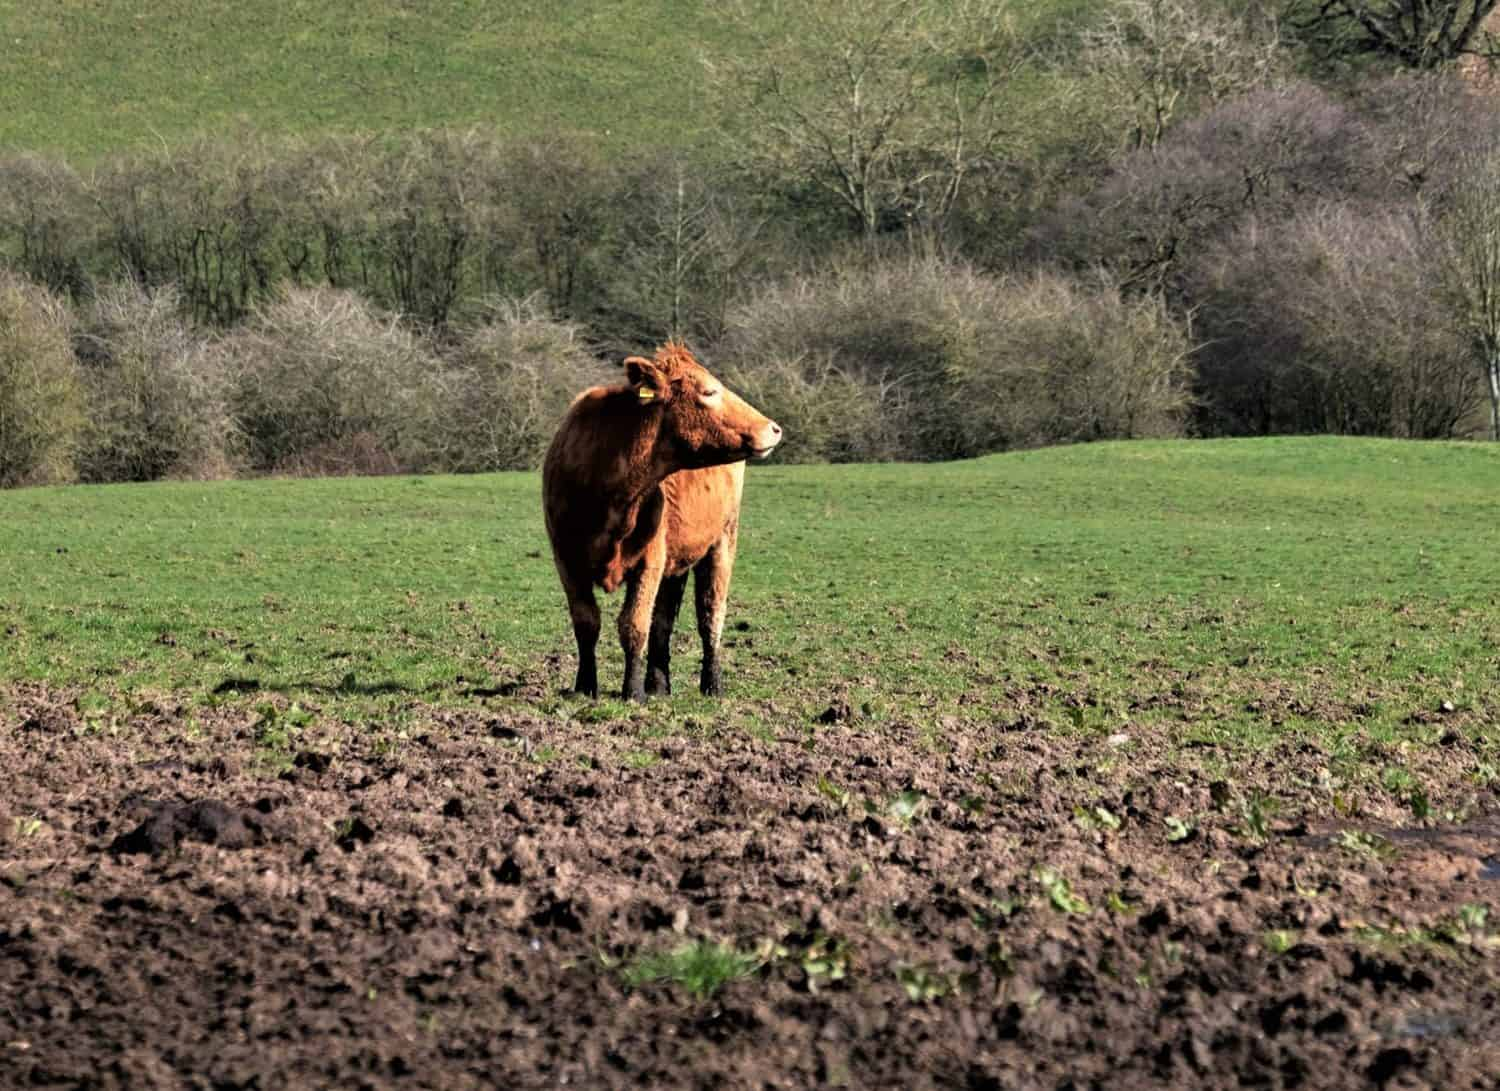 With the expected persistent wet conditions over parts of South Africa, farmers are advised to be on the lookout for livestock pastures flooding and crop damage. Photo: Supplied/Food For Mzansi